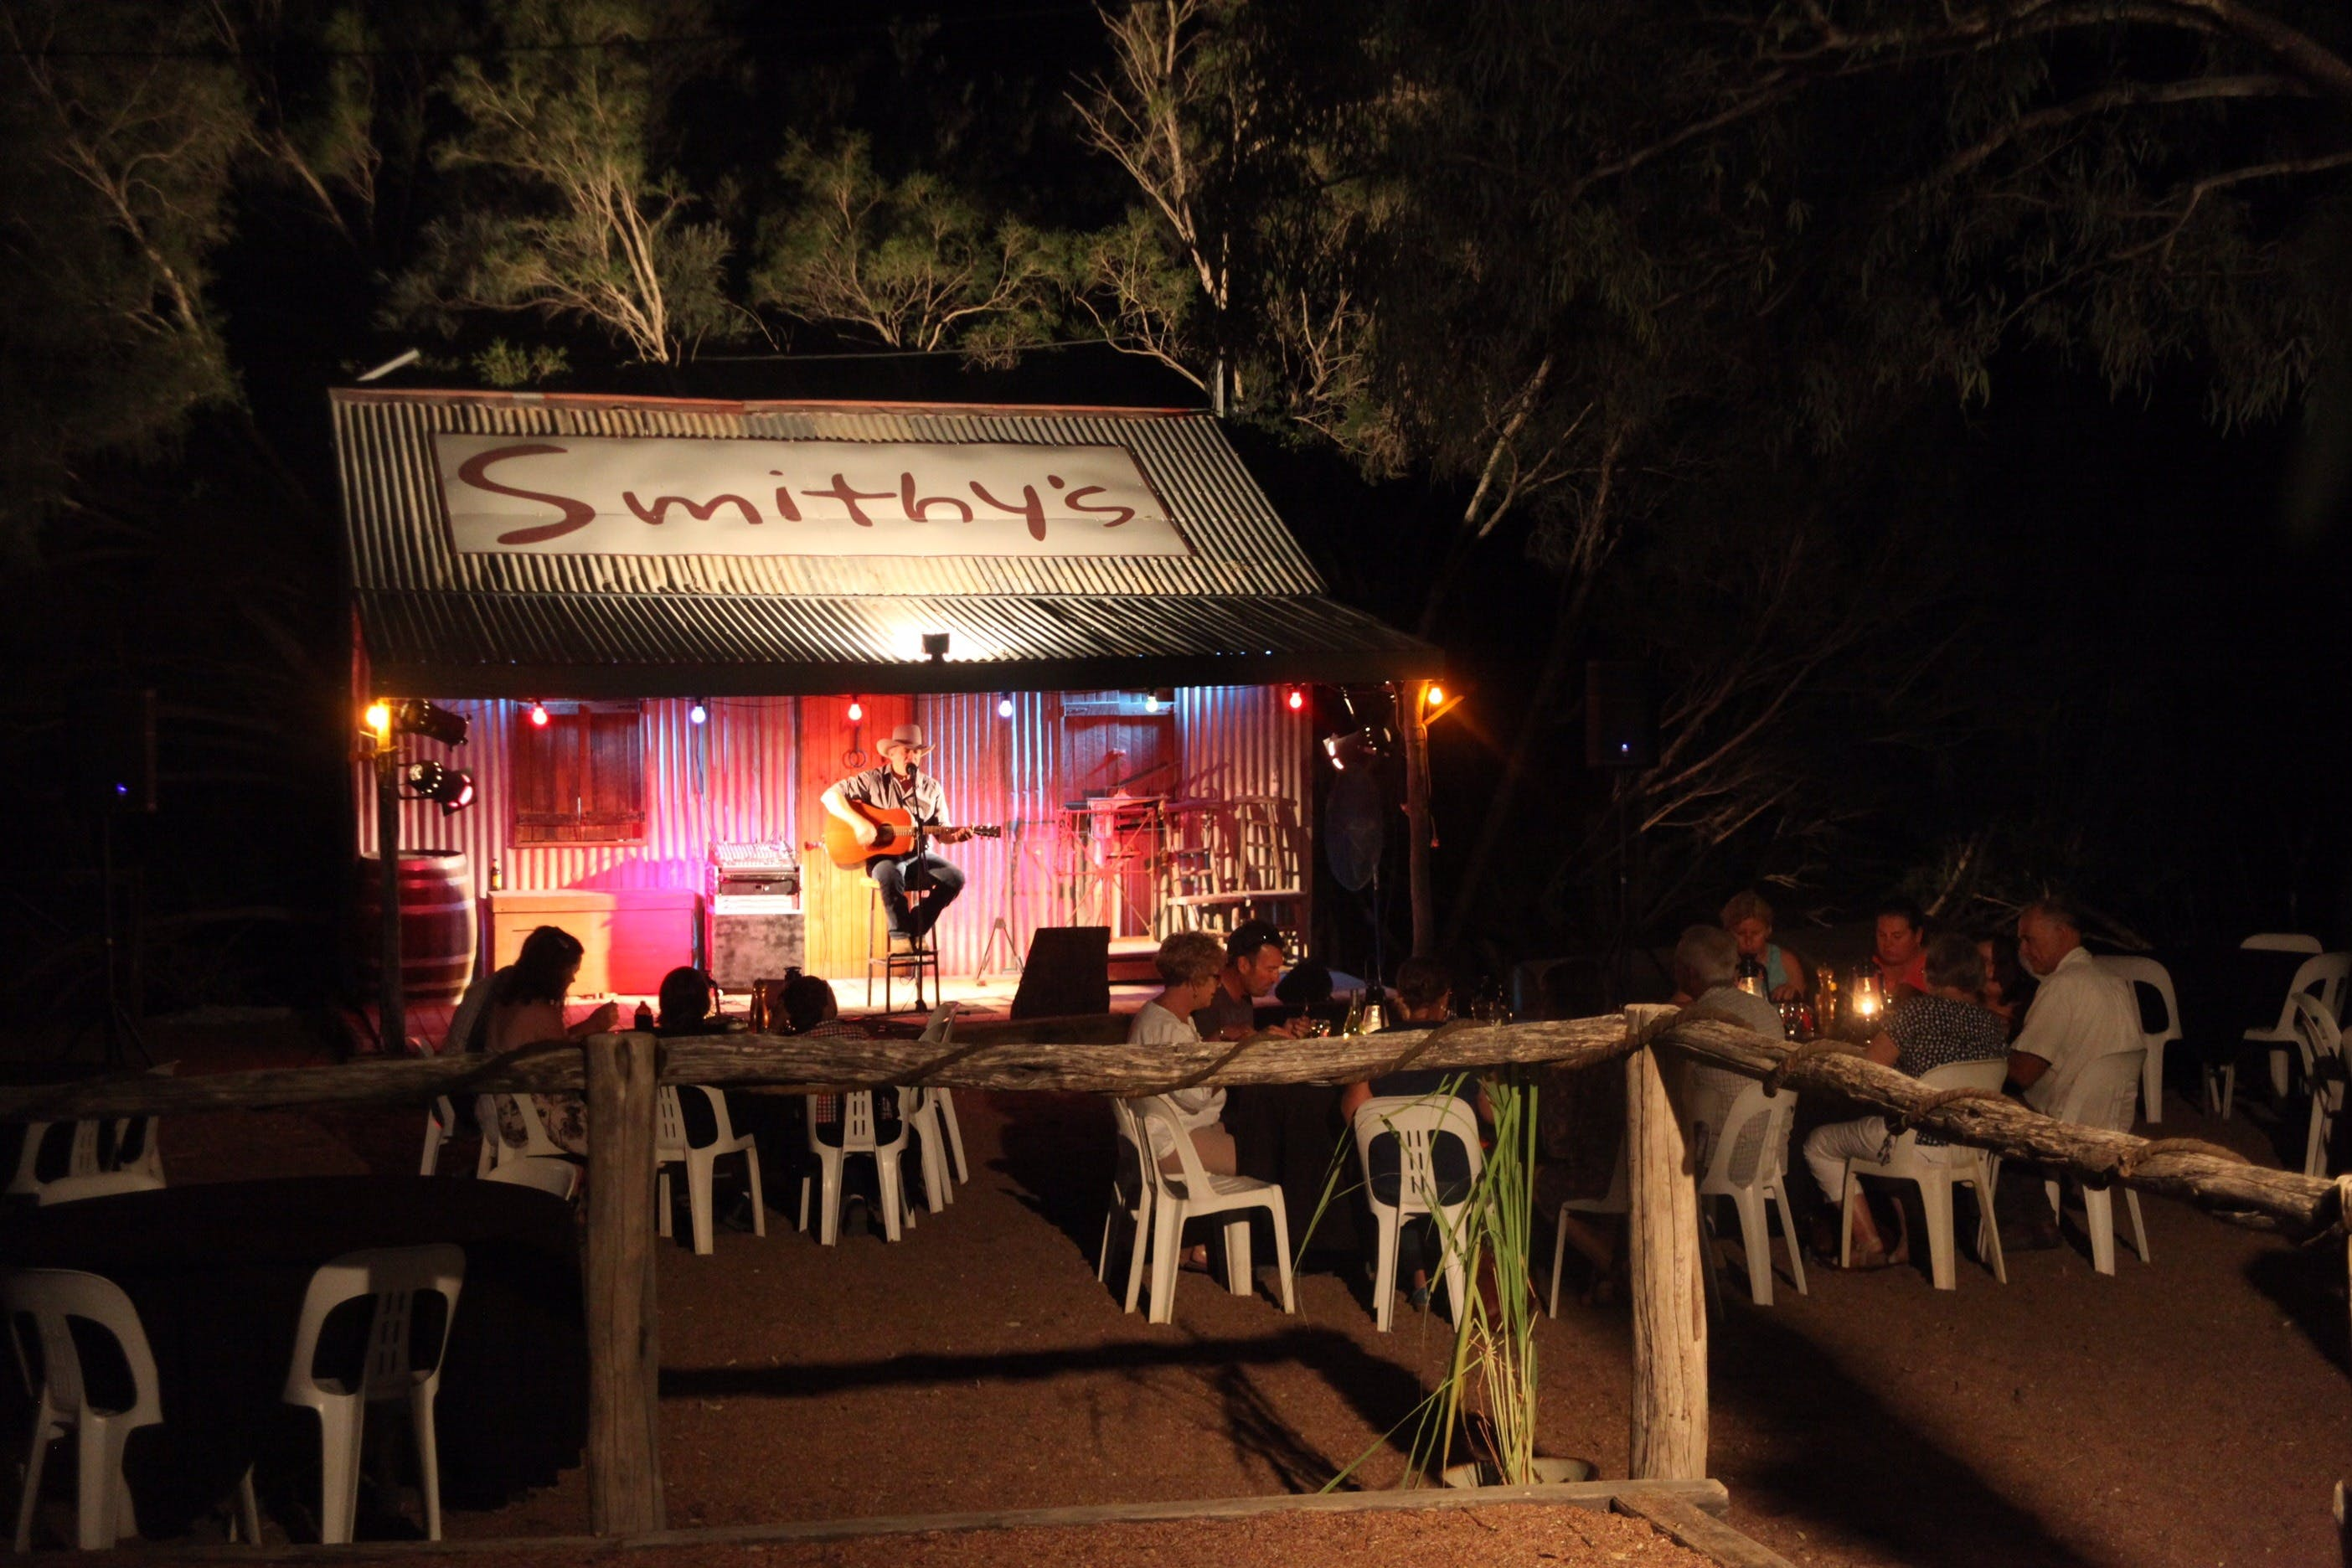 Smithy's Outback Dinner and Show - Accommodation Daintree